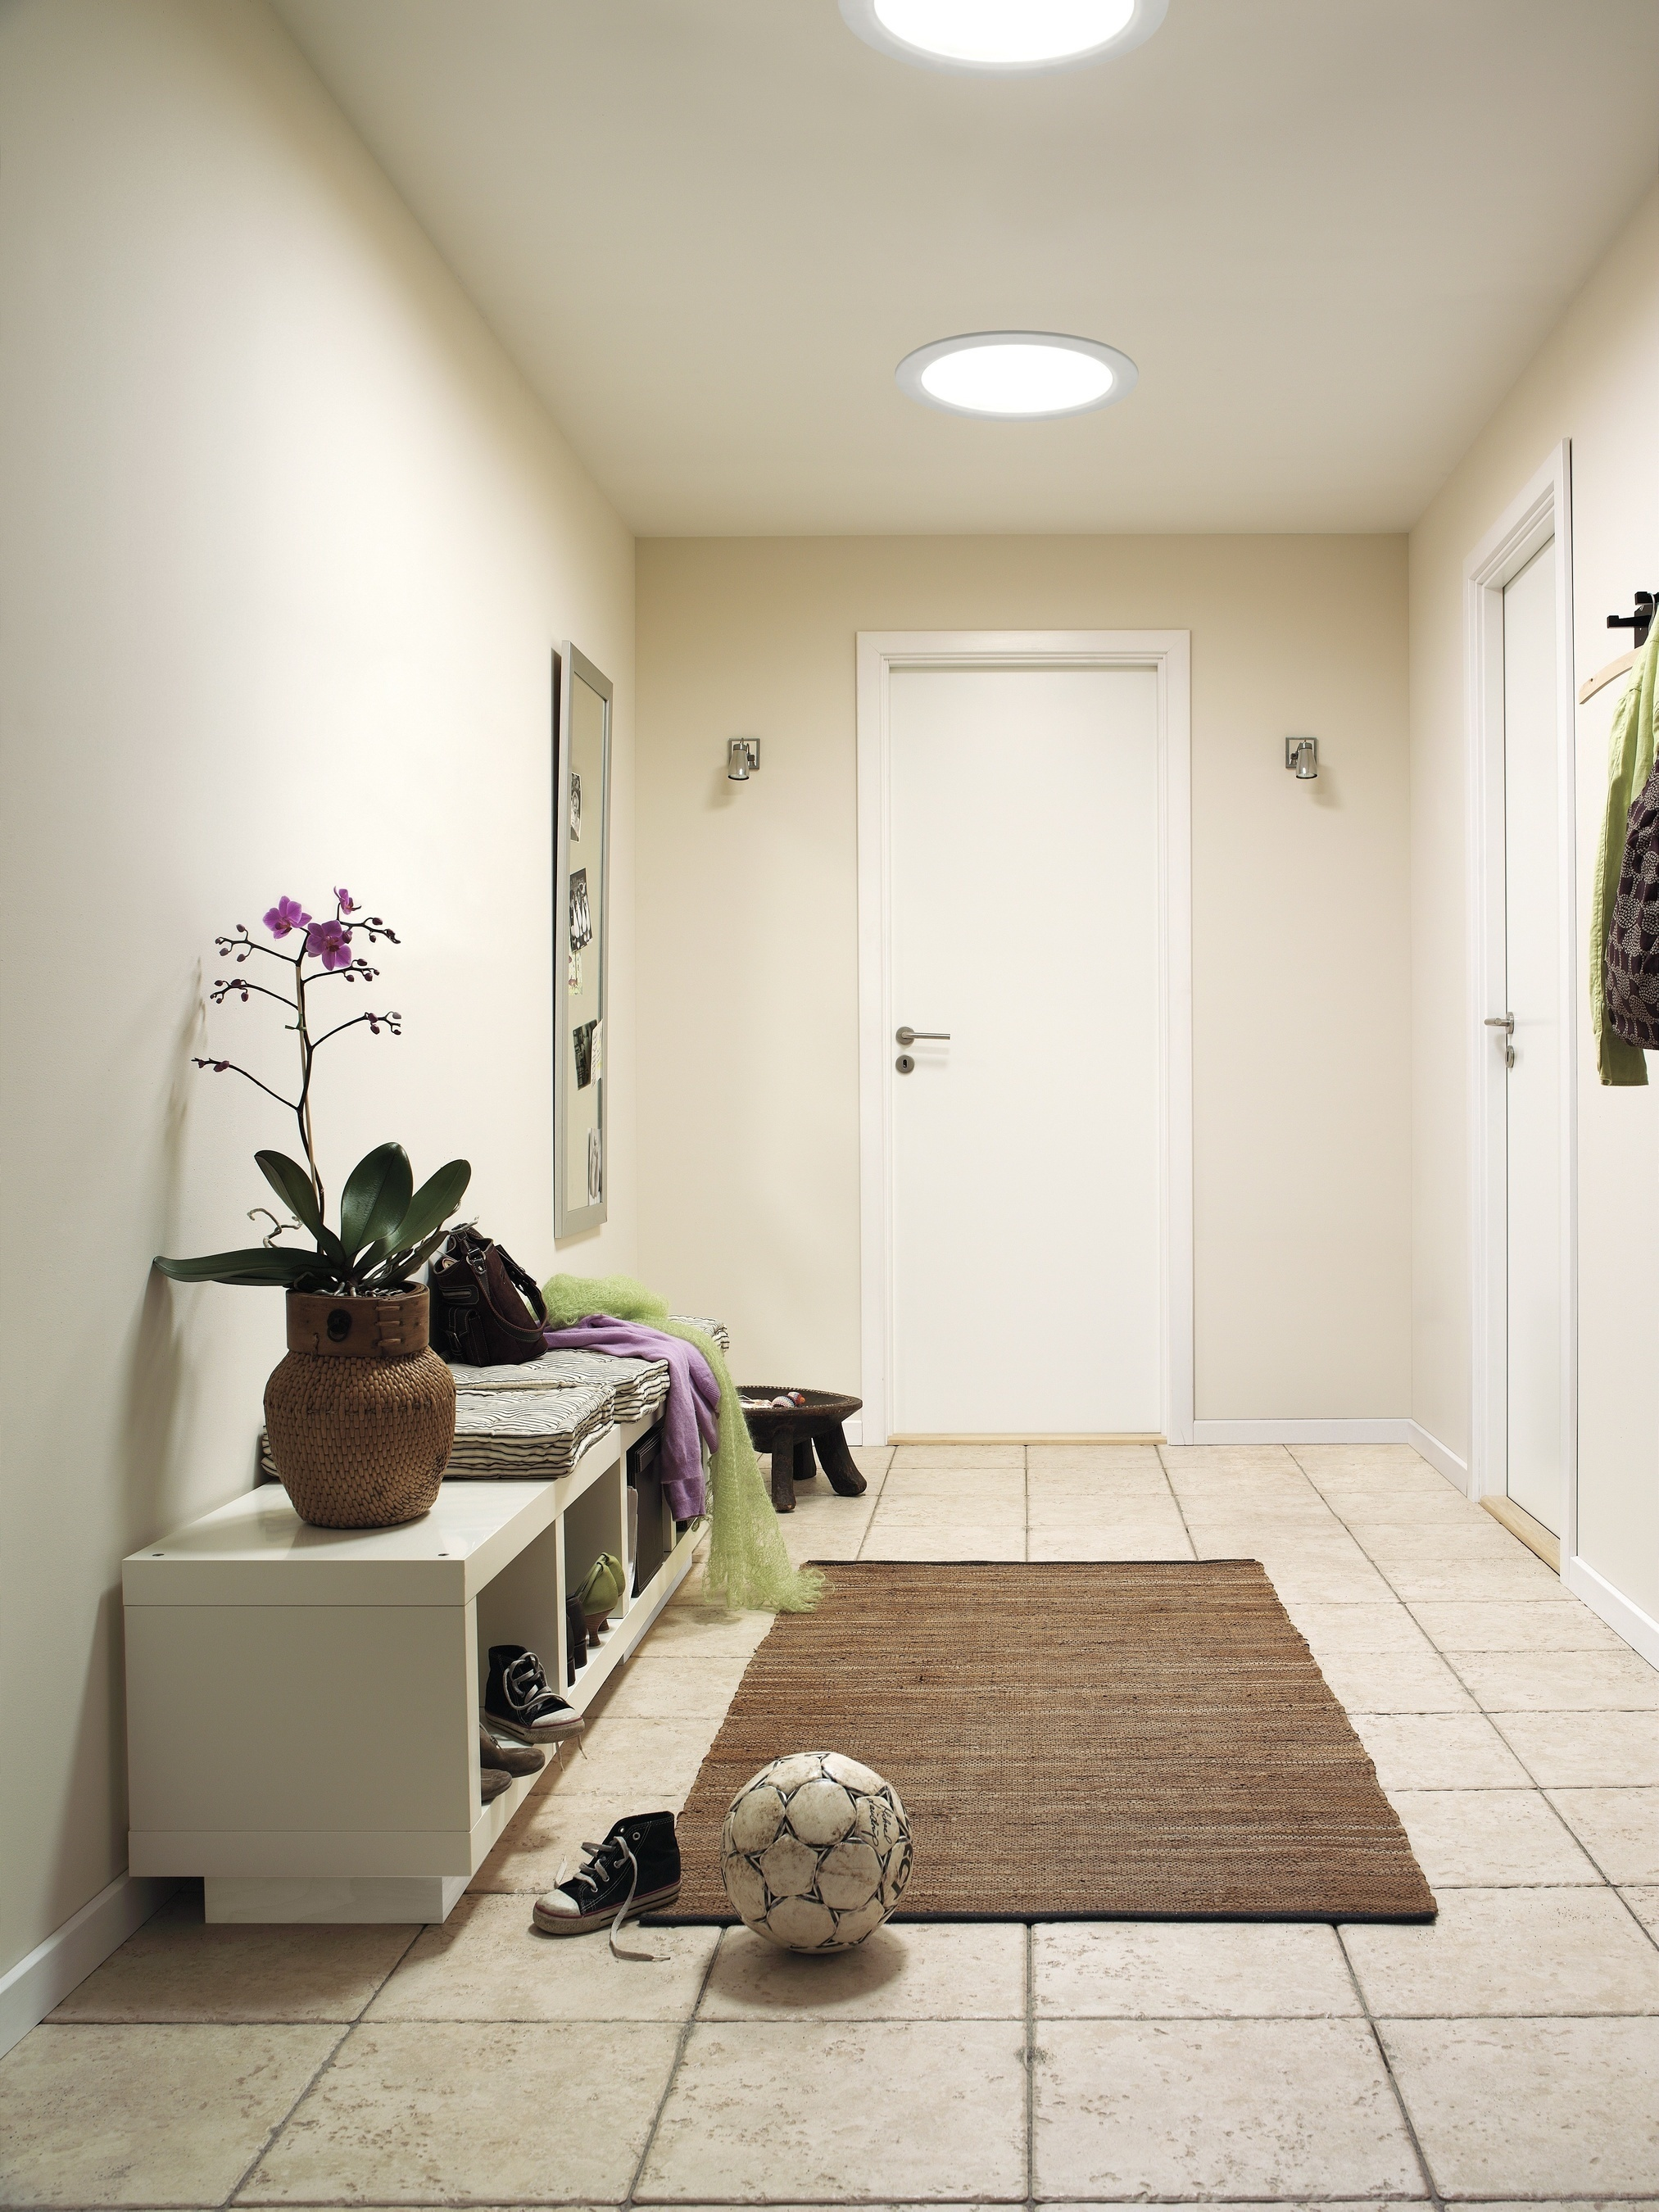 VELUX Sun Tunnel tubular skylights are inexpensive and can be installed professionally or by a knowledgeable DIYer. They provide natural light through a variety of fashionable ceiling diffusers to areas of the home where traditional skylights may not fit or aren't the best solution for daylighting needs. Sun Tunnel skylights are particularly useful in hallways, closets, laundry rooms and baths. (PRNewsFoto/VELUX)